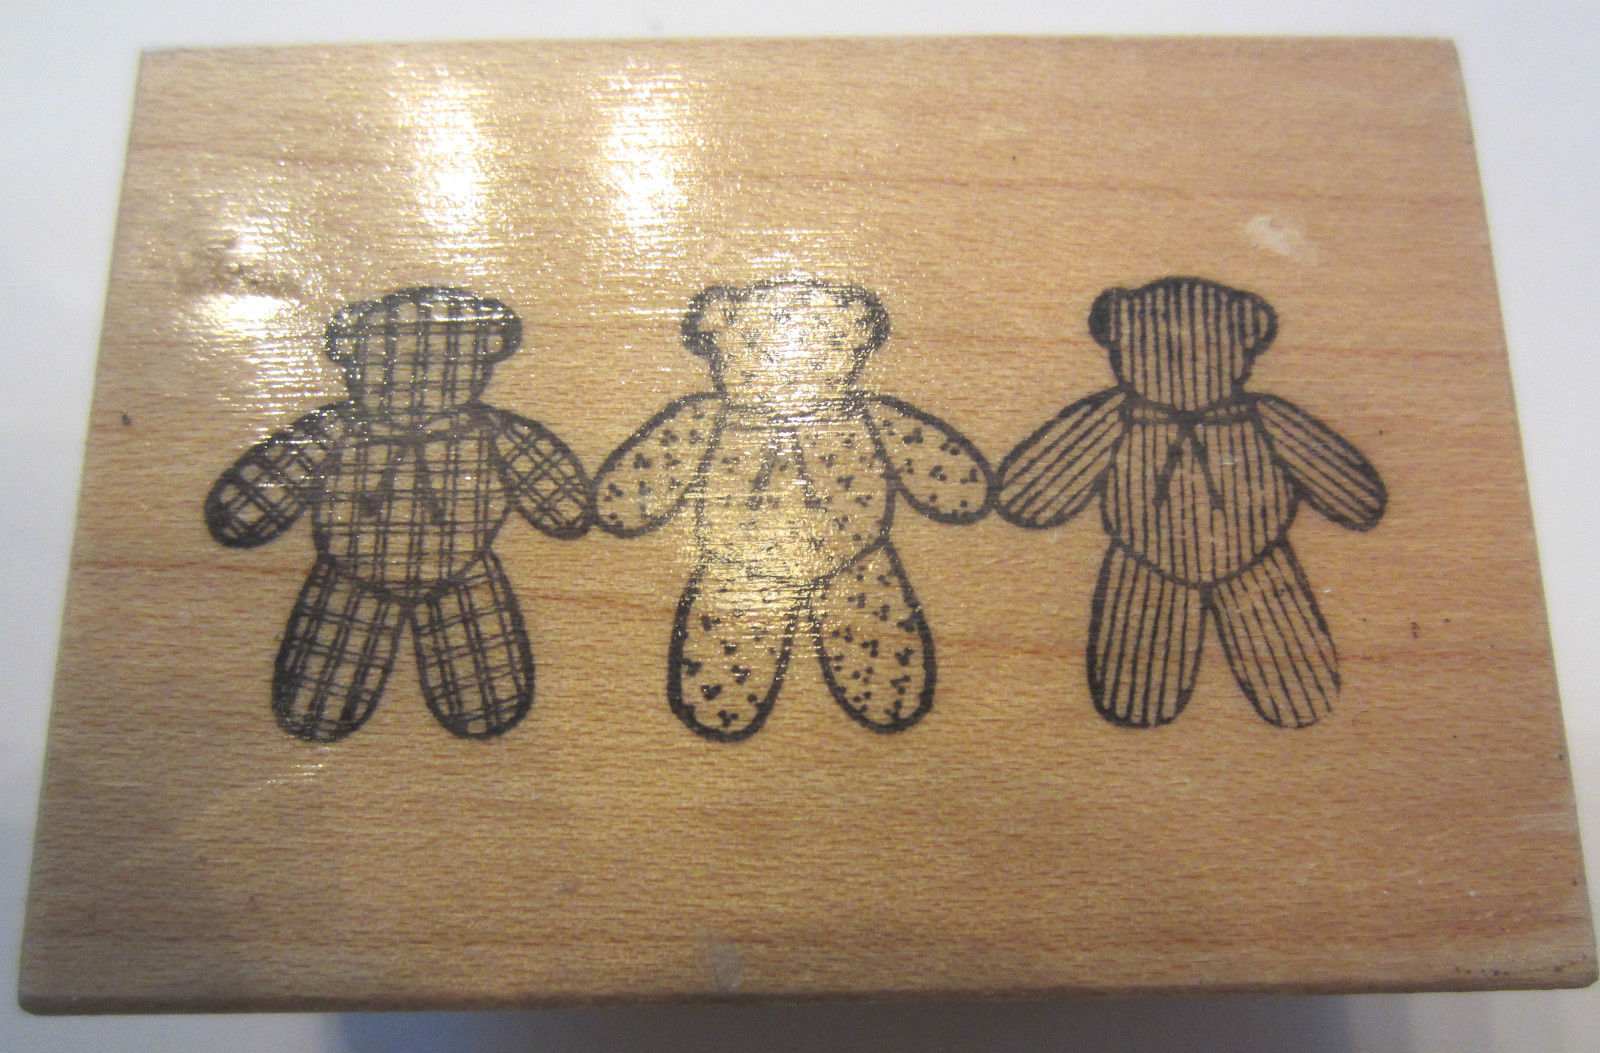 Teddy Plaid Psx Patterned Stuffed Teddy Bear Trio Stripes Plaid Dots 1988 D 893 Rubber Stamp